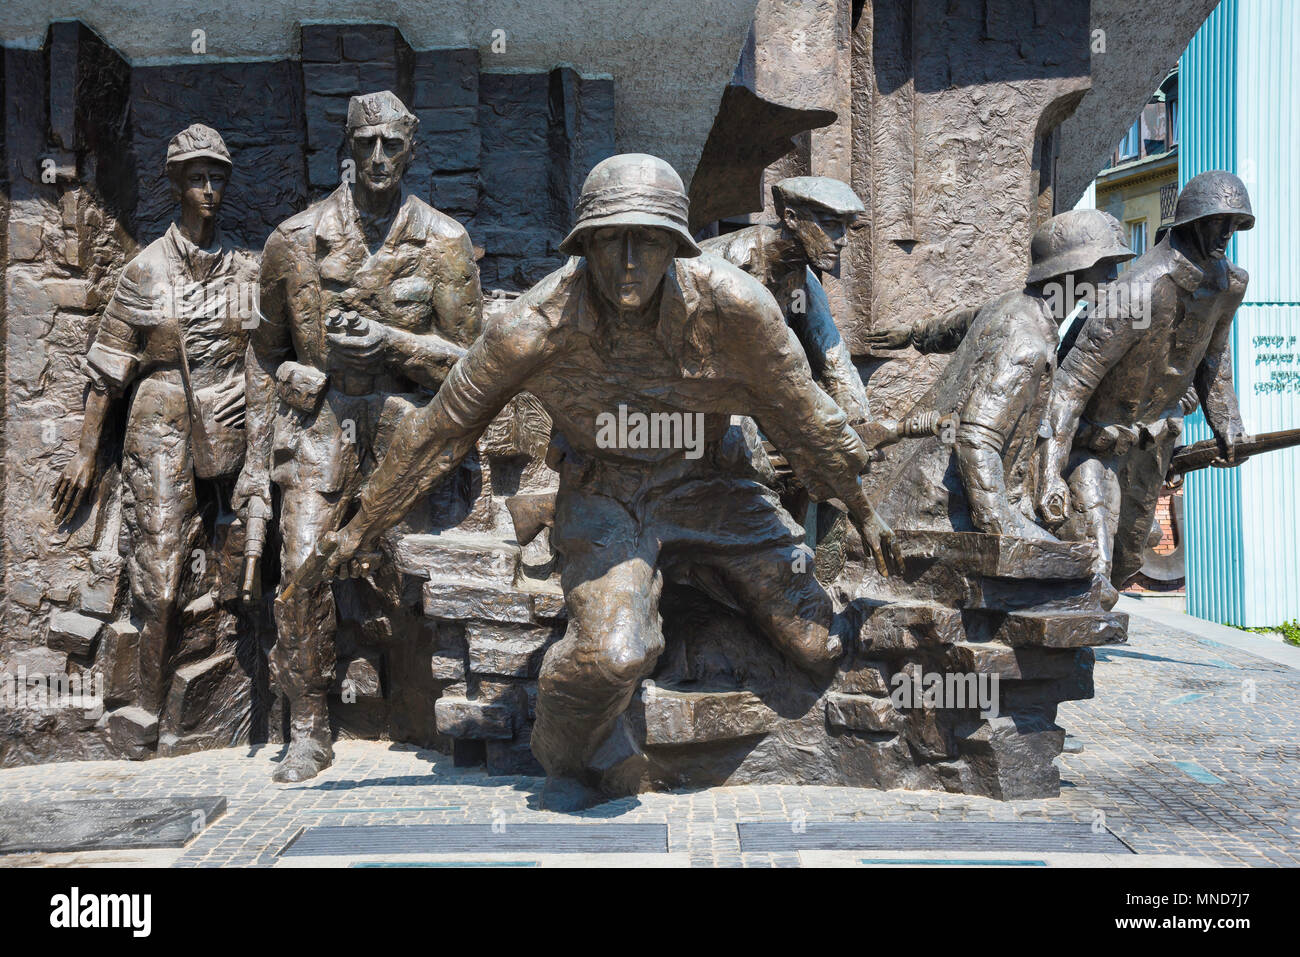 Detail of Polish resistance fighters portrayed in the Monument To The Warsaw Rising in Plac Krasinskich in the center of Warsaw, Poland. Stock Photo